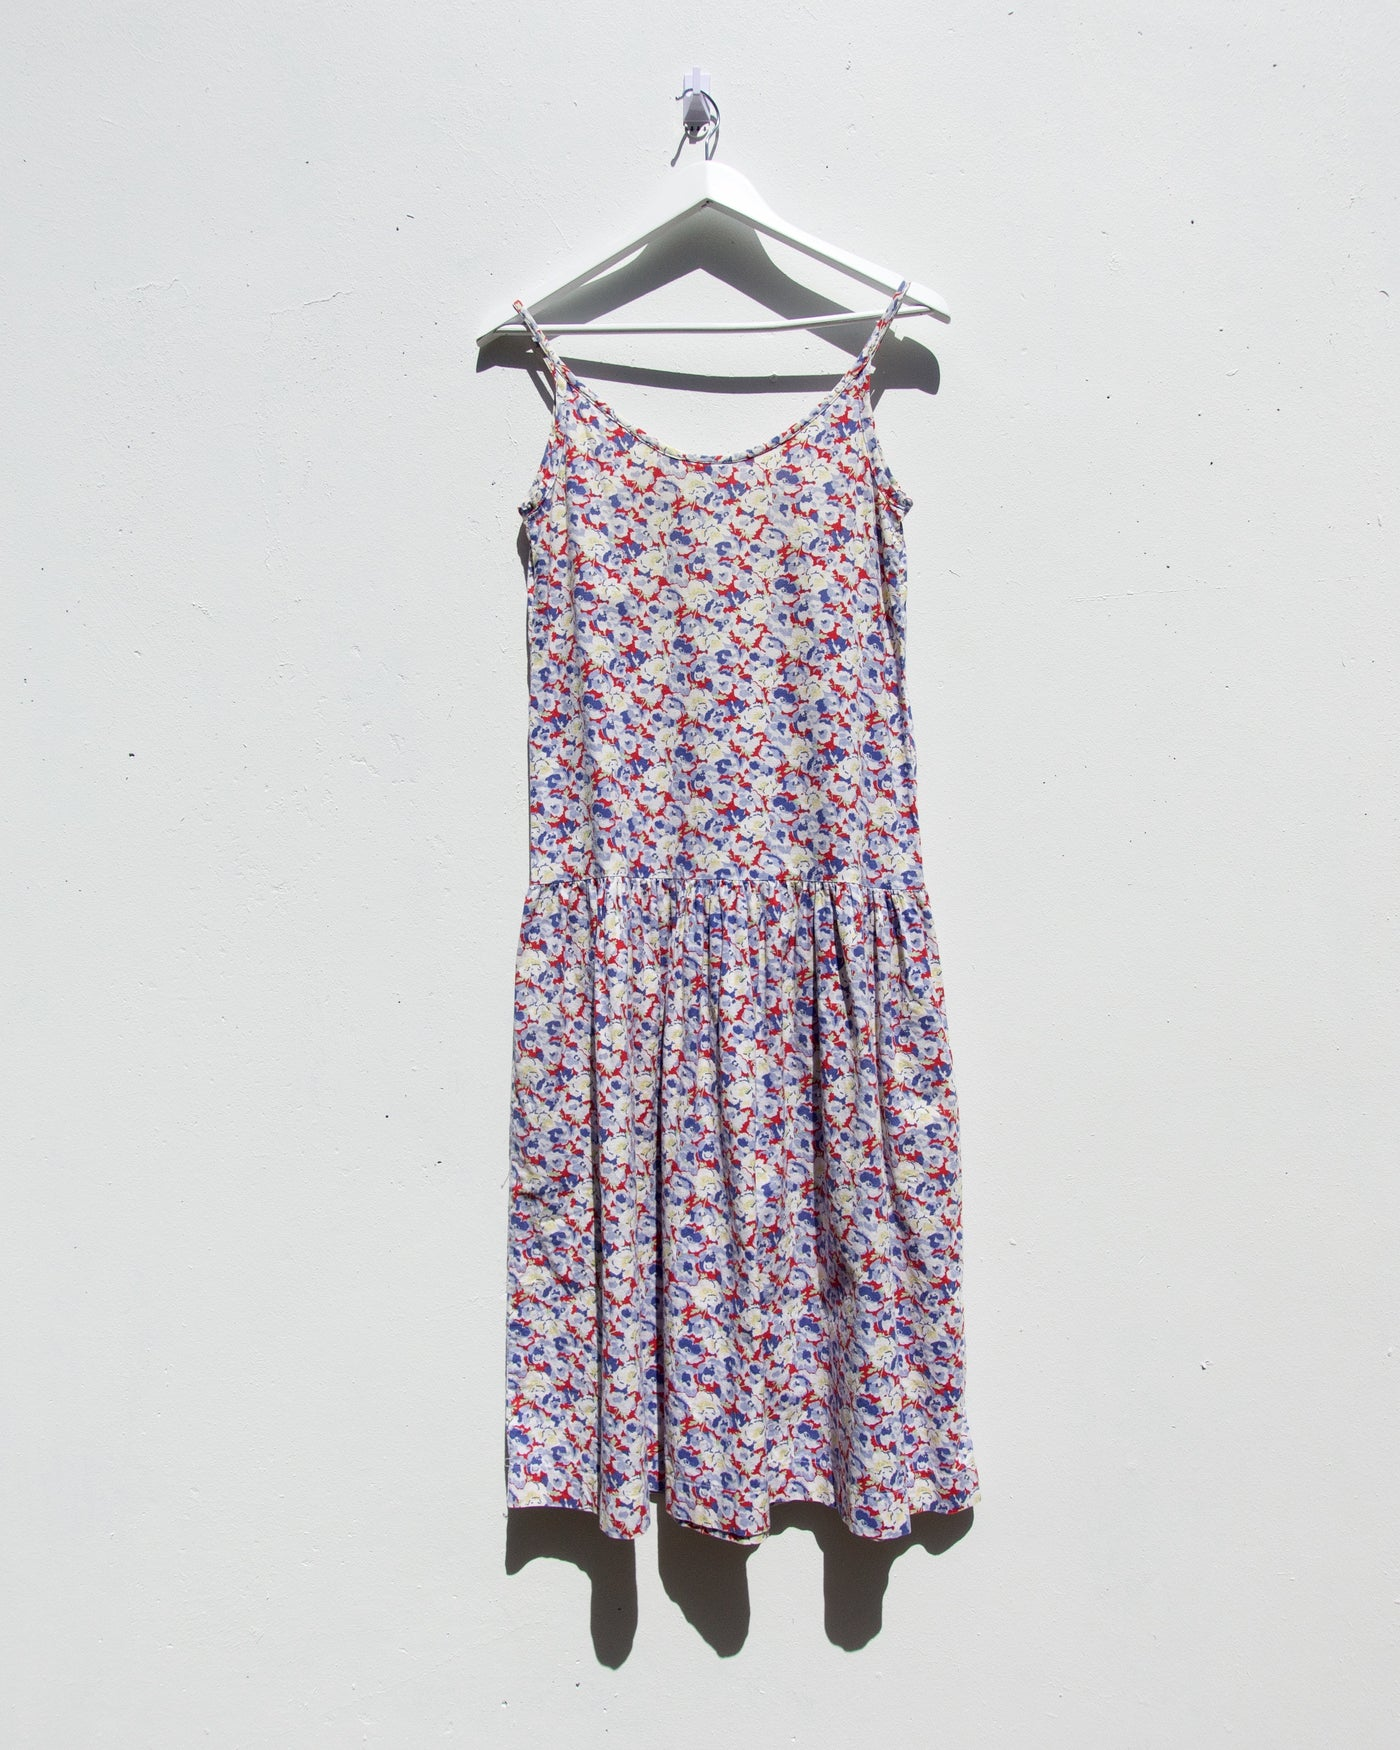 Vintage Laura Ashley Dropped Waist Floral Dress - Size 10-12